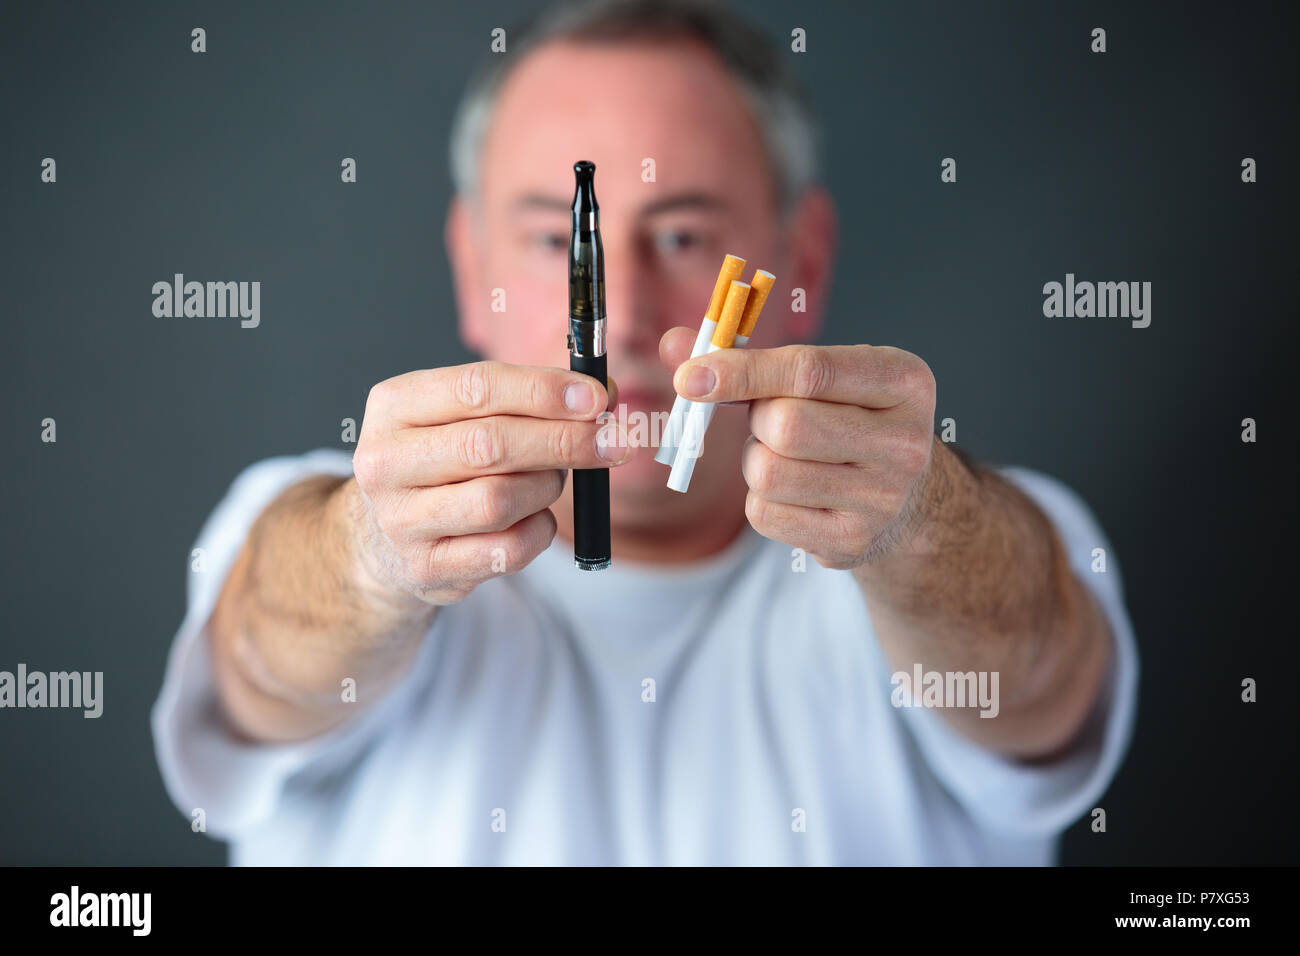 doctor comparing conventional tobacco cigarettes and electronic vaporizer - Stock Image